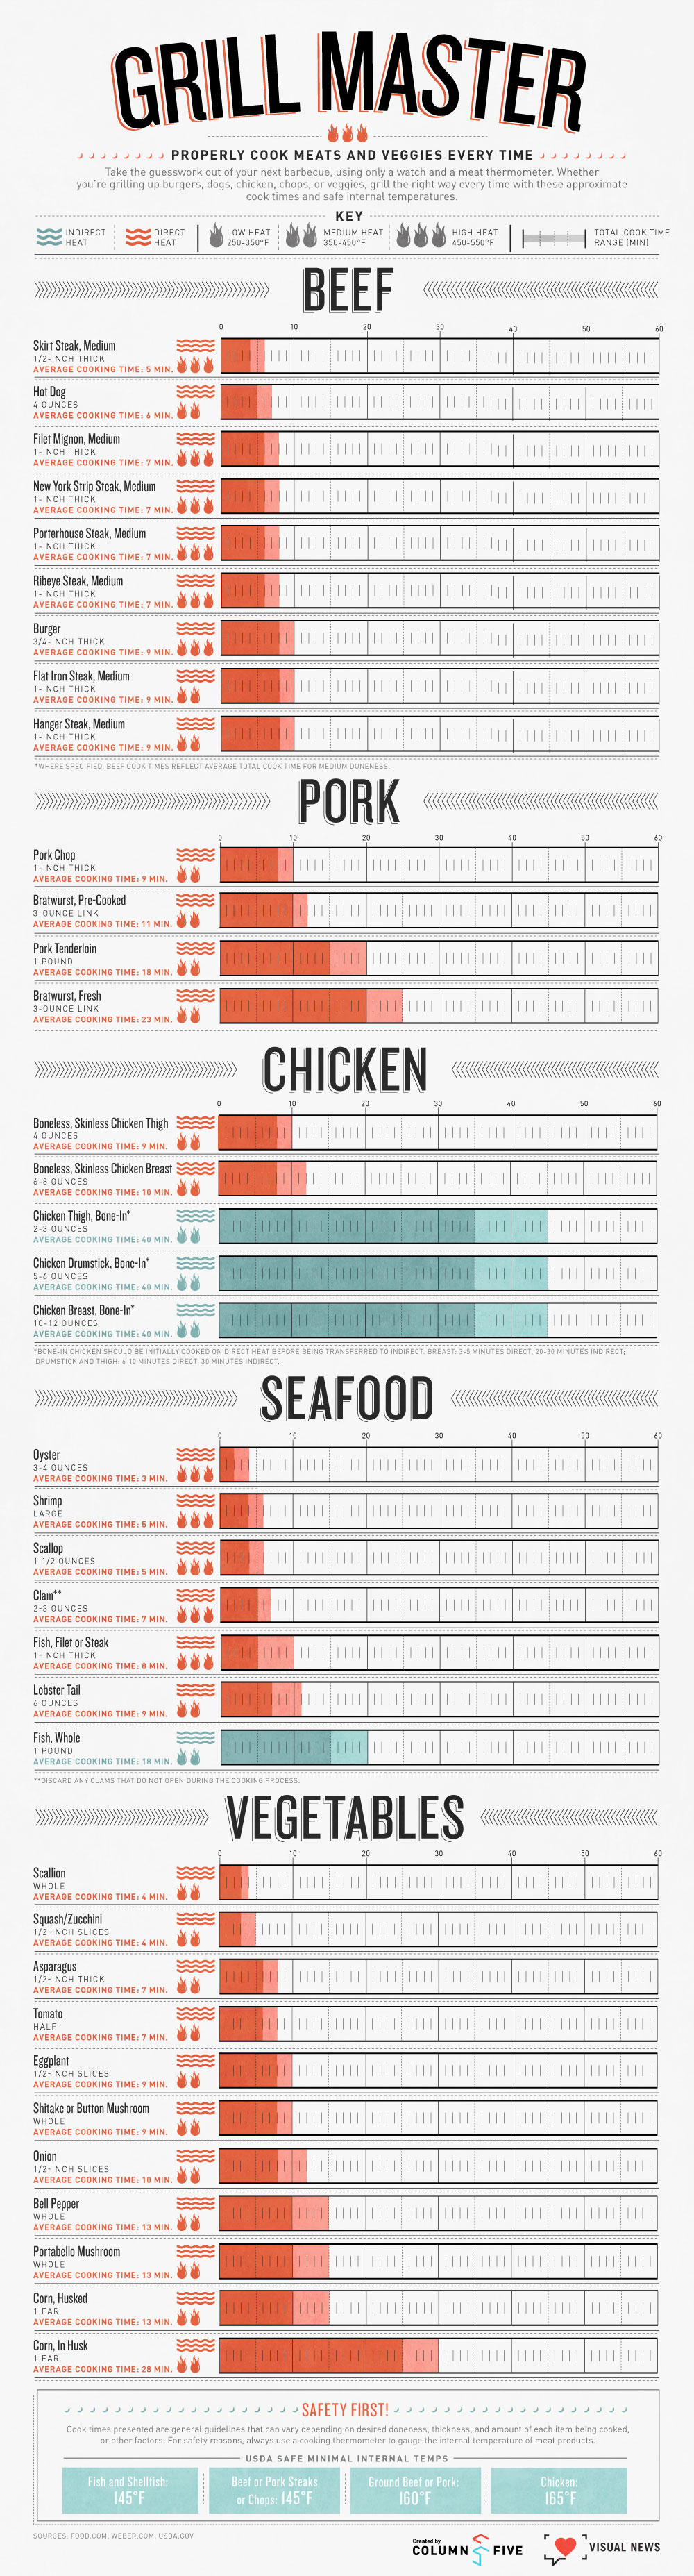 Grill Master: A Foolproof Guide to Grilling..... Don't screw up summertime cooking